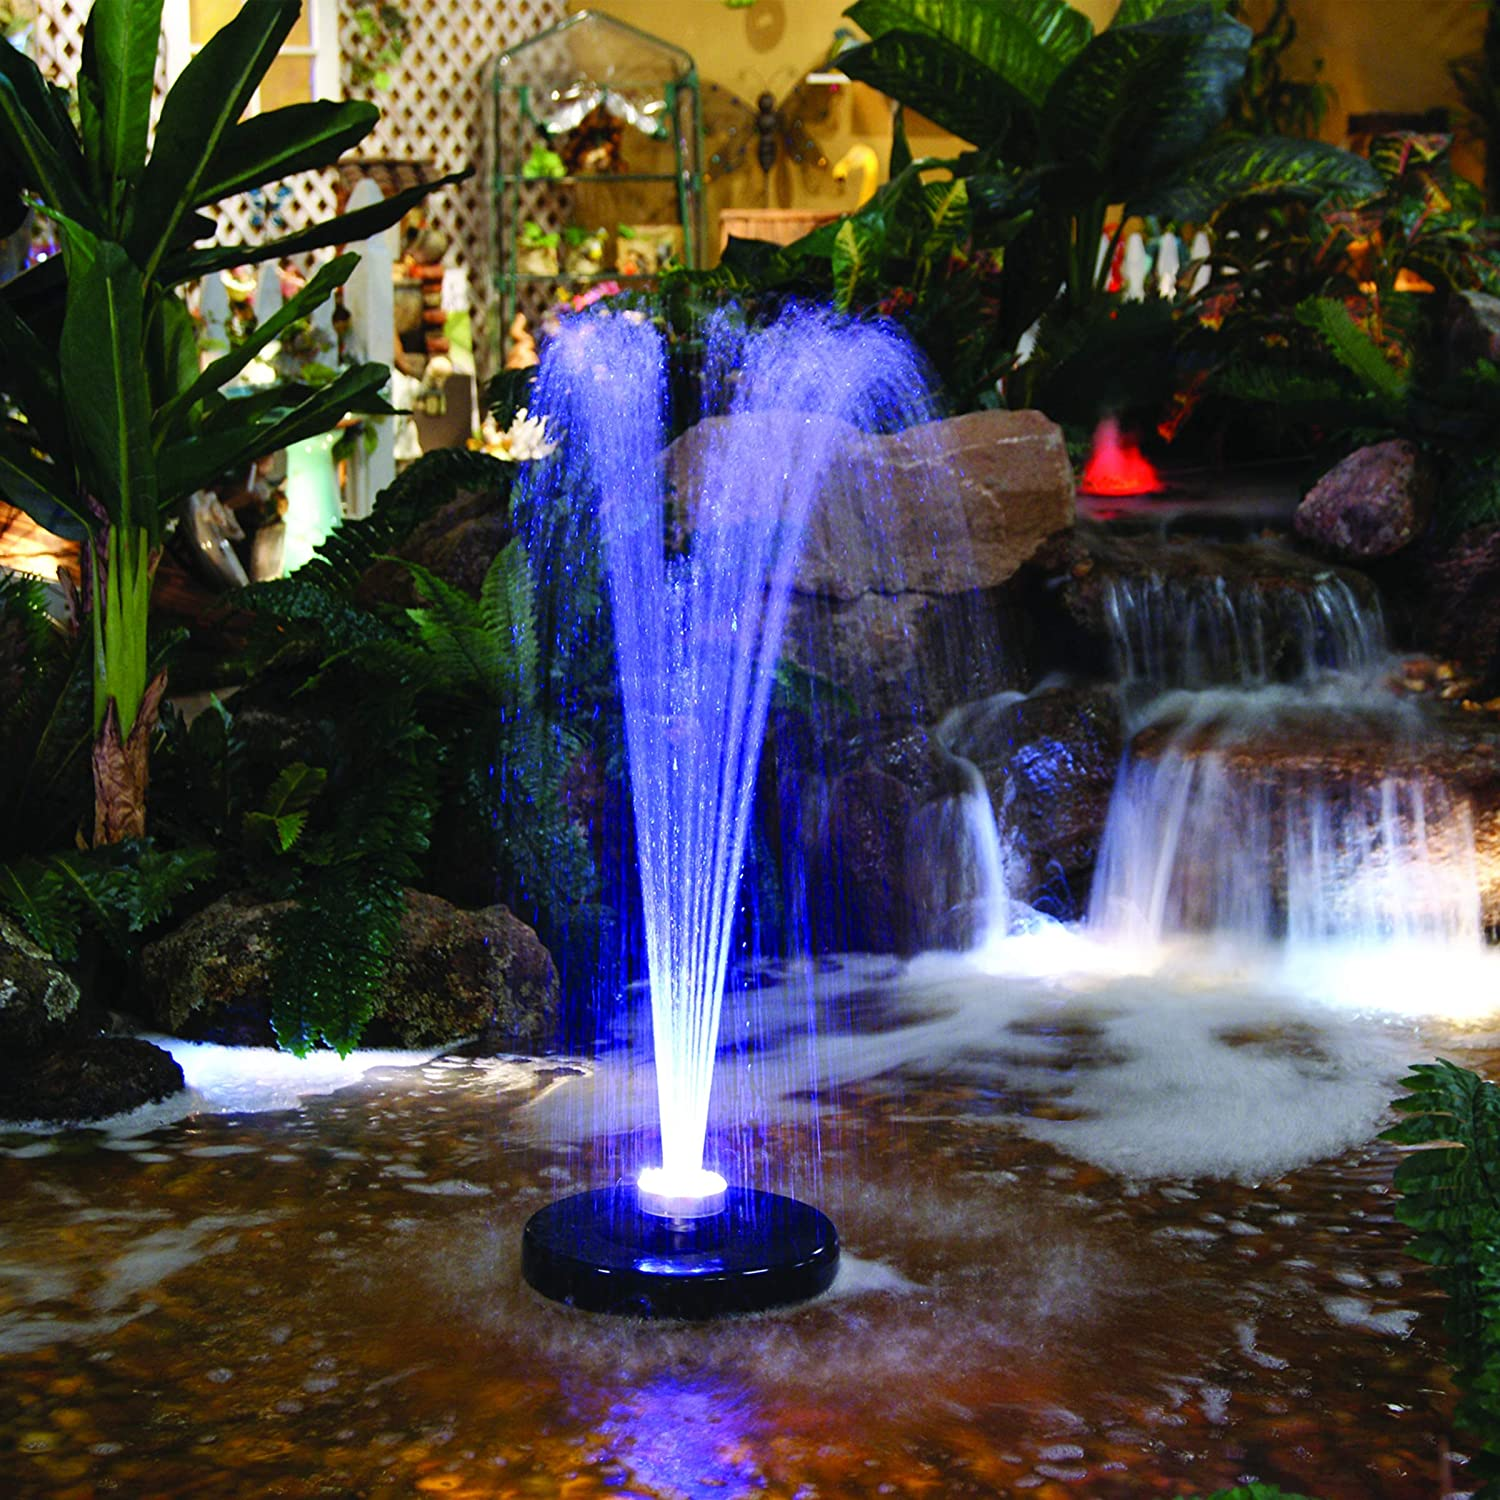 Alpine Corporation FTC102 550-GPH Pump 48-LED Light Floating Spray Fountain, 530 gph, Beige